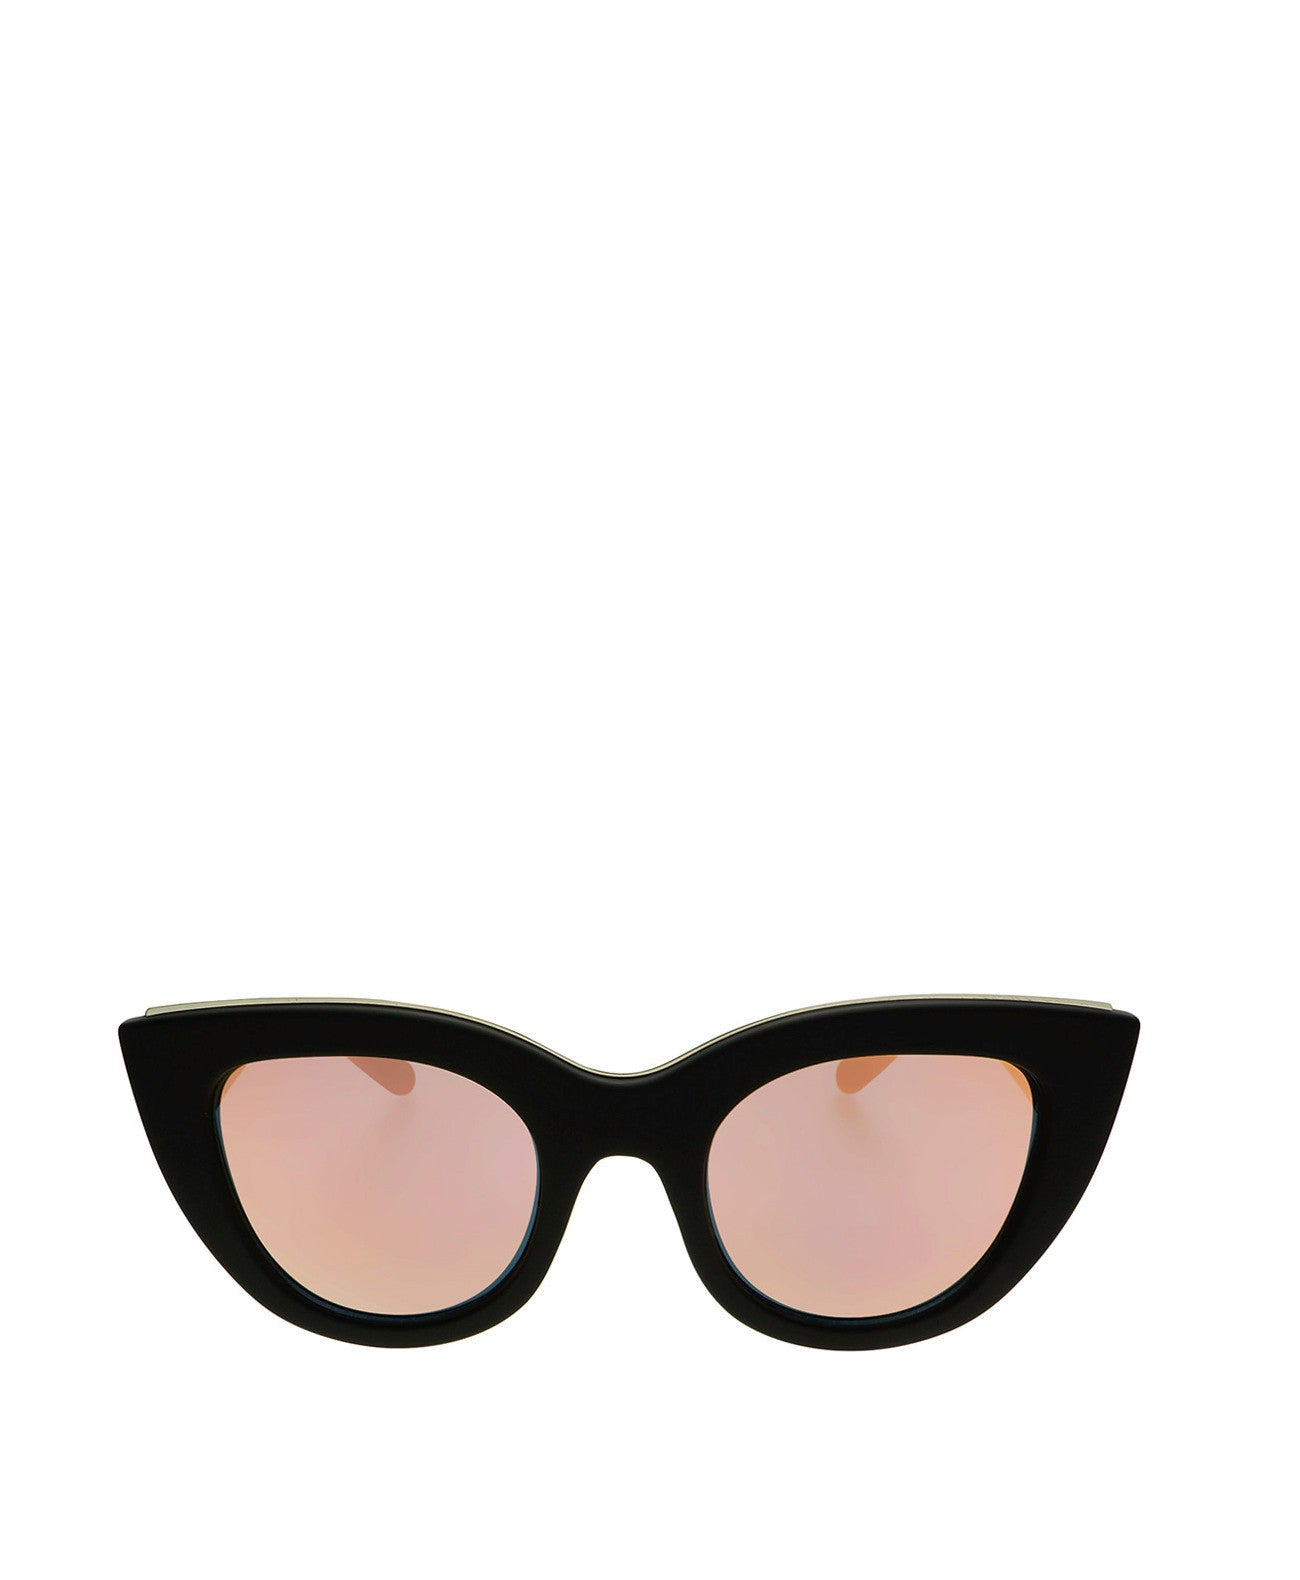 Fifi-Blk/Pink Fifi Cat Eye Matte Black Sunglasses